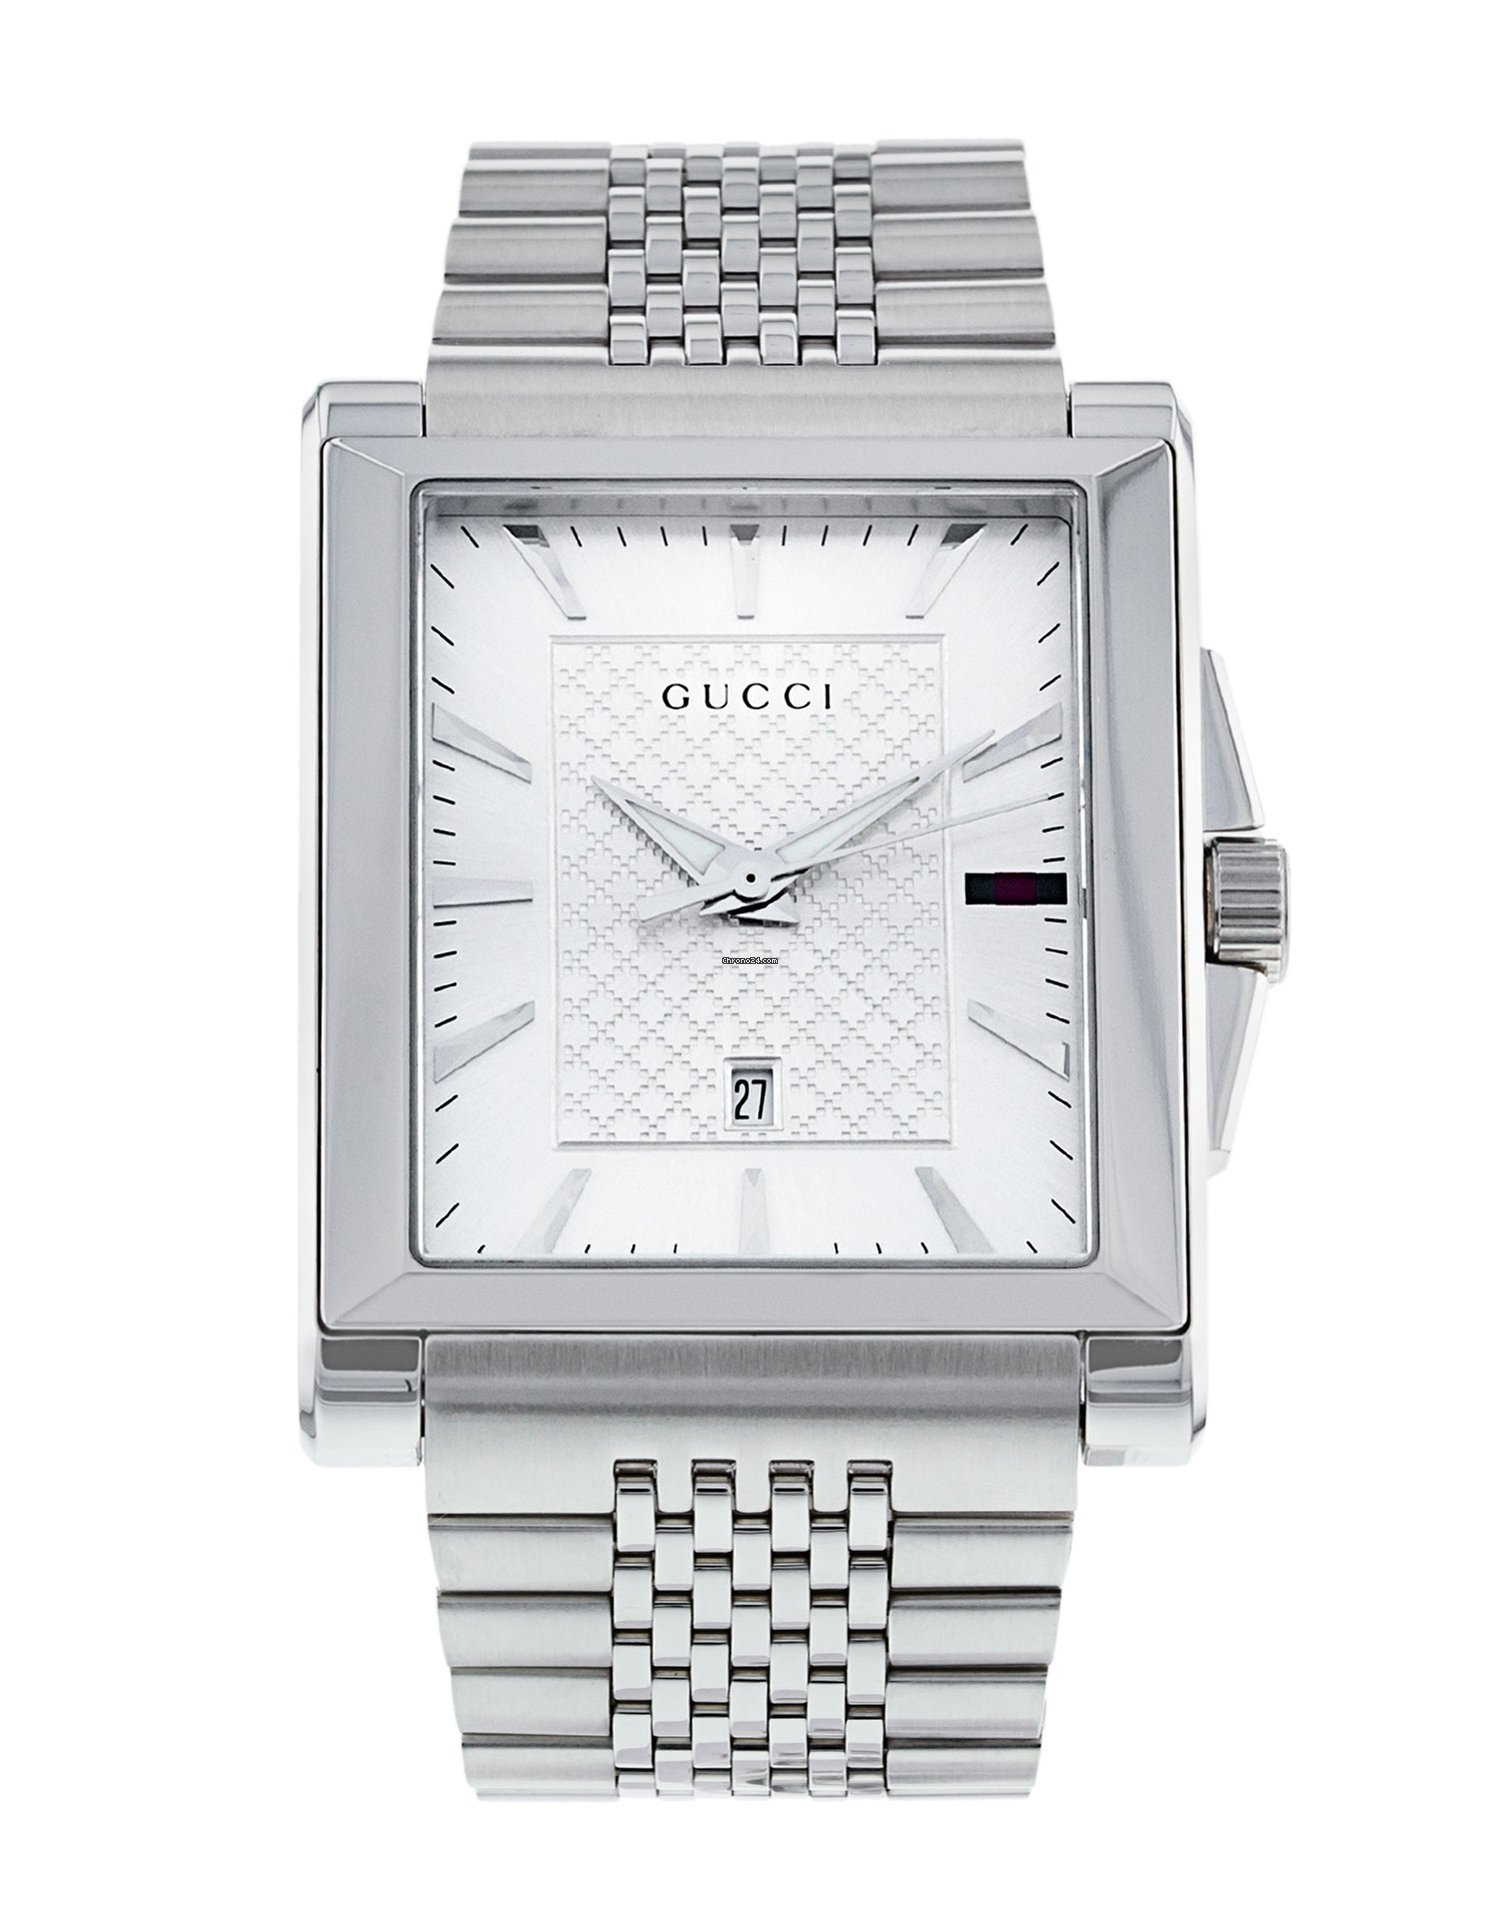 73867d7ff72 Gucci Watch G Timeless YA138403 for  592 for sale from a Seller on Chrono24